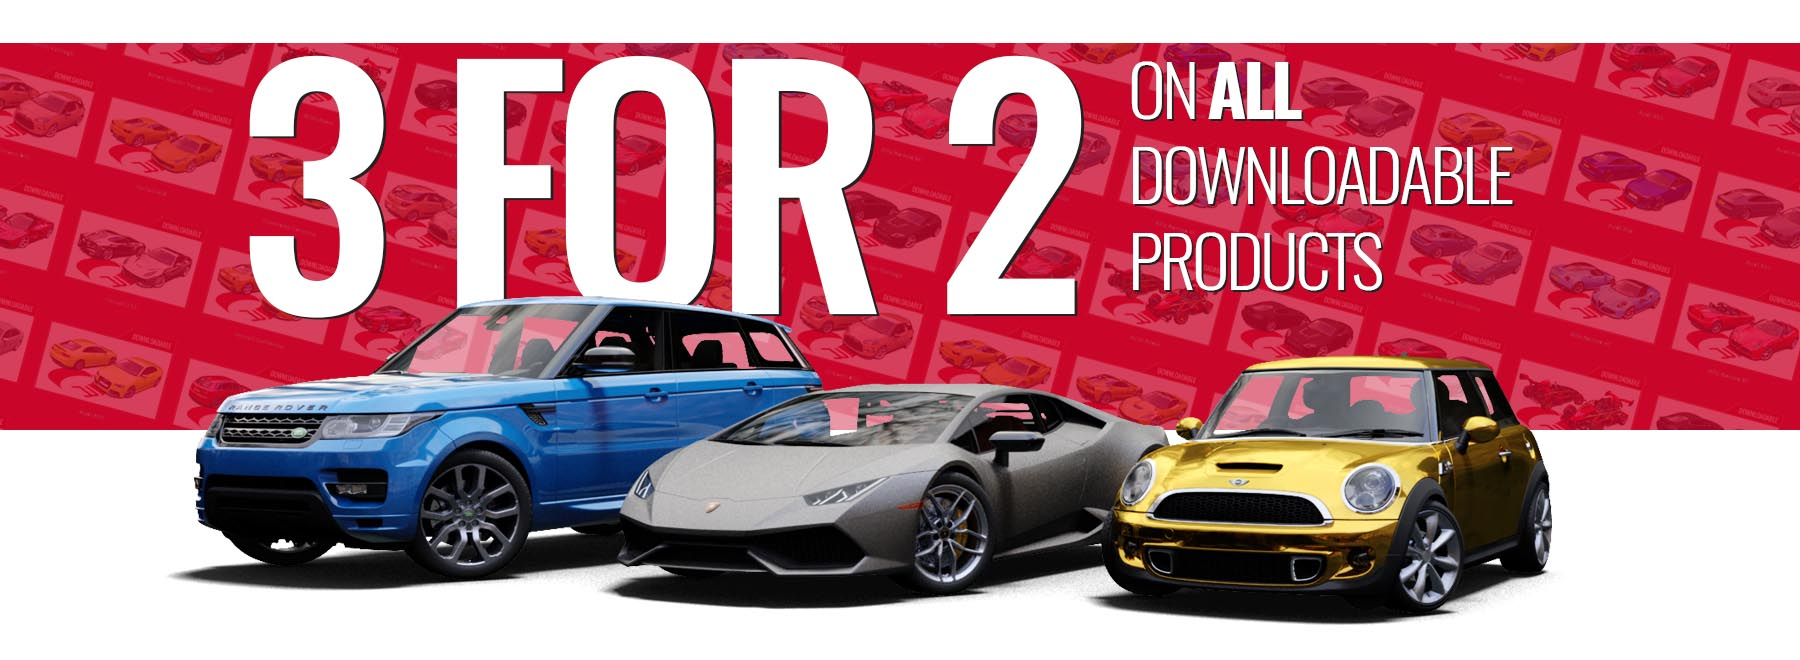 3-for-2-Downloadable-Products